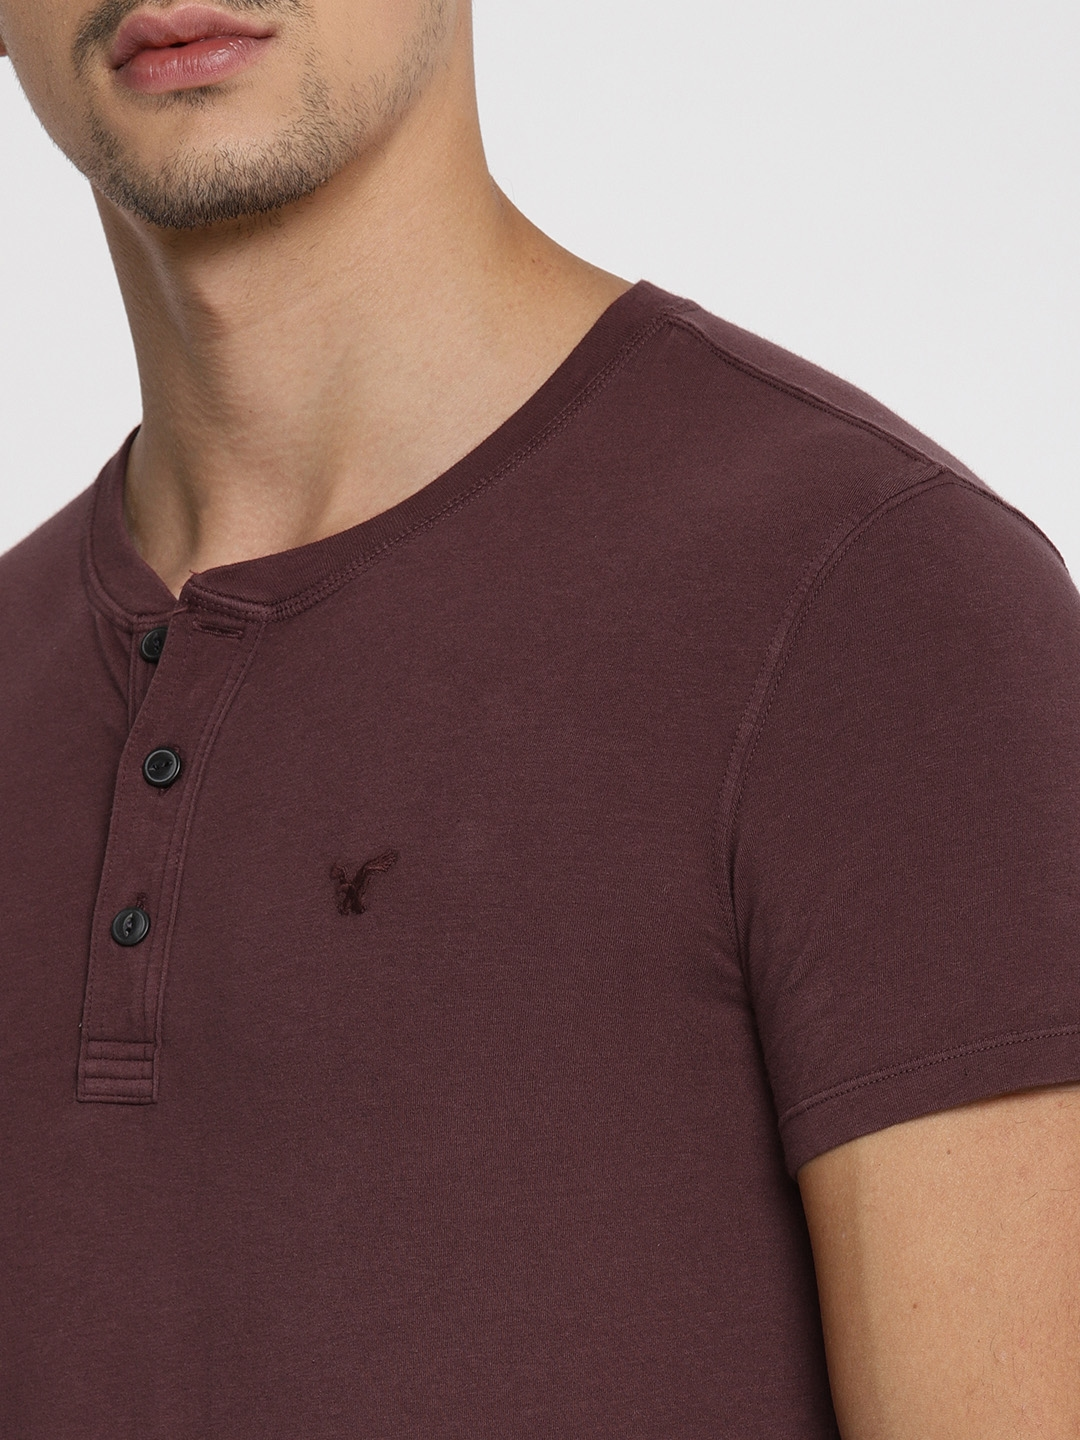 e86ffe40 Buy AMERICAN EAGLE OUTFITTERS Men Burgundy Solid Henley Neck T Shirt ...